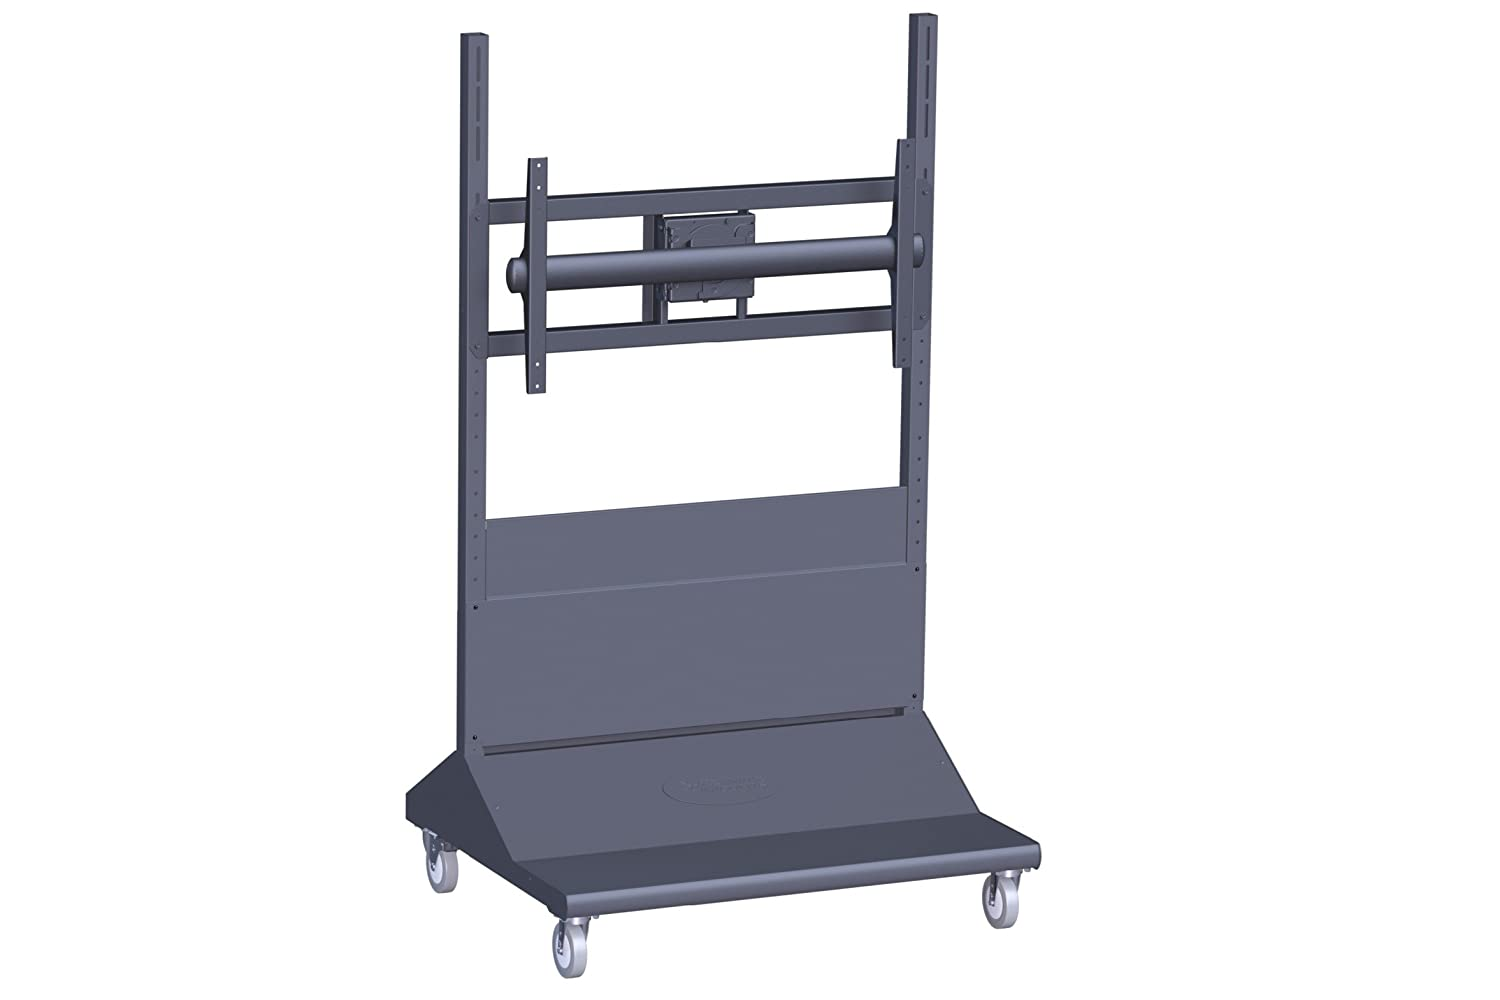 Vogel's PFT 8855 universeller Display Trolley (65-80 Zoll)